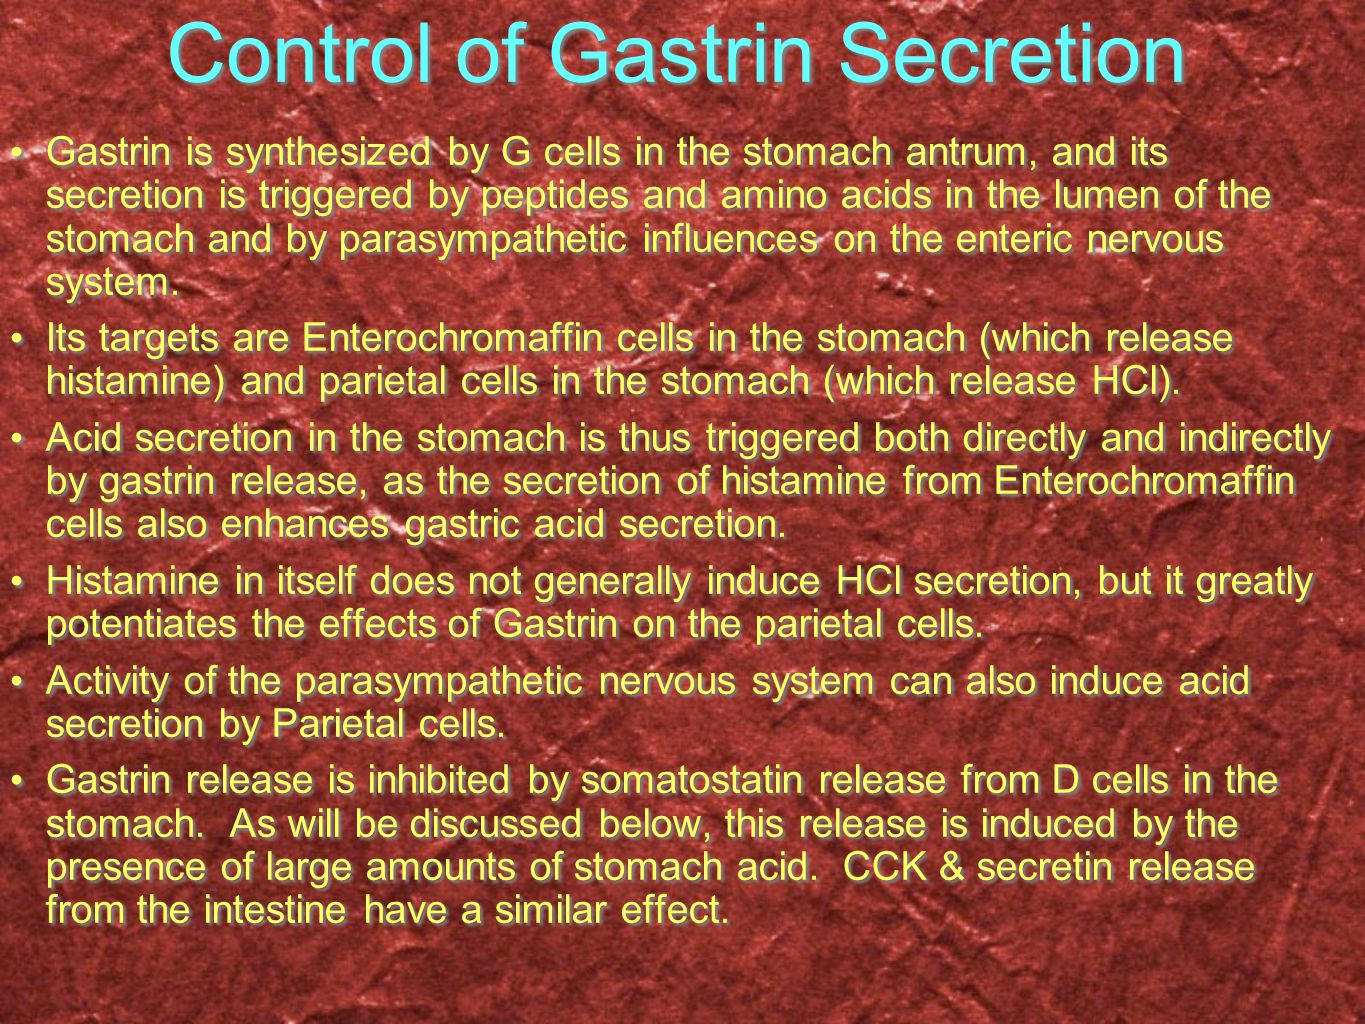 Control of Gastrin Secretion Gastrin is synthesized by G cells in the stomach antrum, and its secretion is triggered by peptides and amino acids in the lumen of the stomach and by parasympathetic influences on the enteric nervous system.